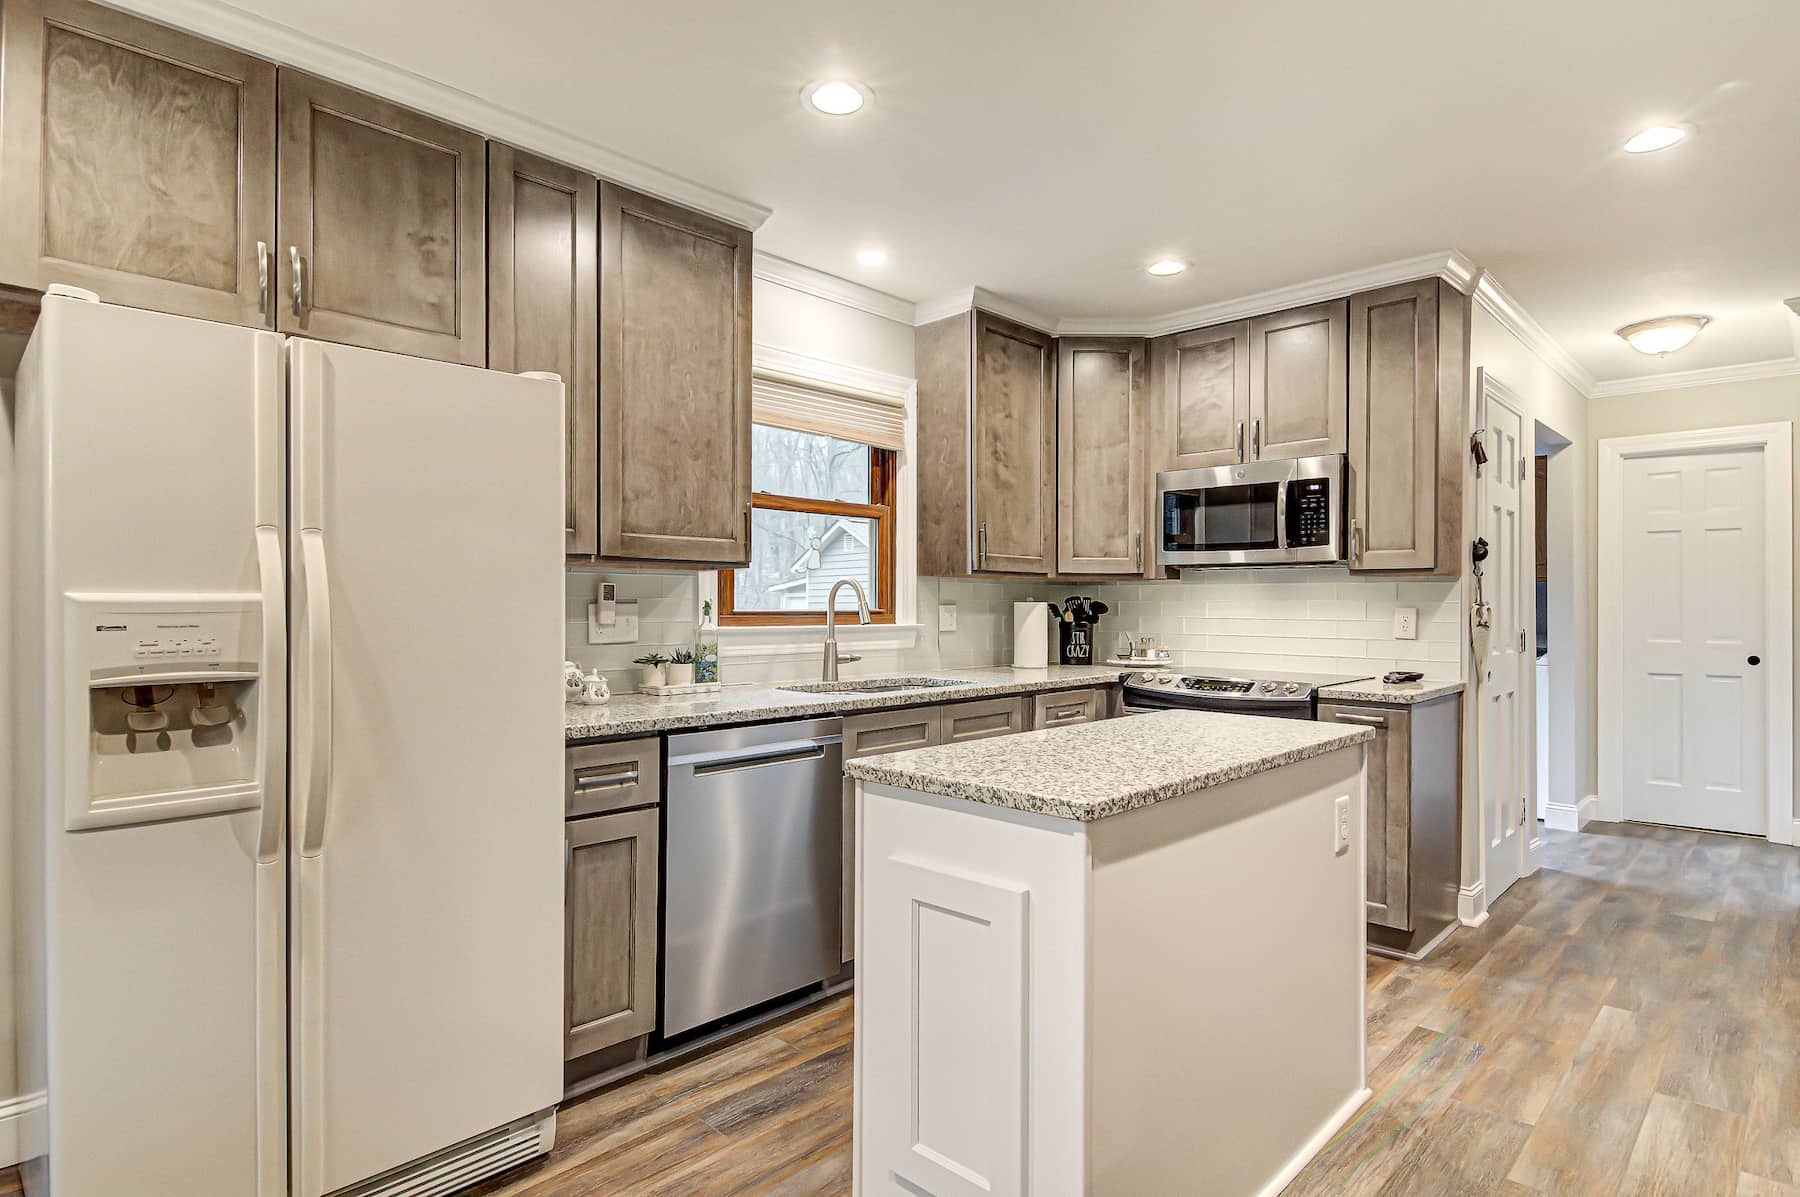 Kitchen remodel with island stainless steel appliances granite countertops Greensboro NC